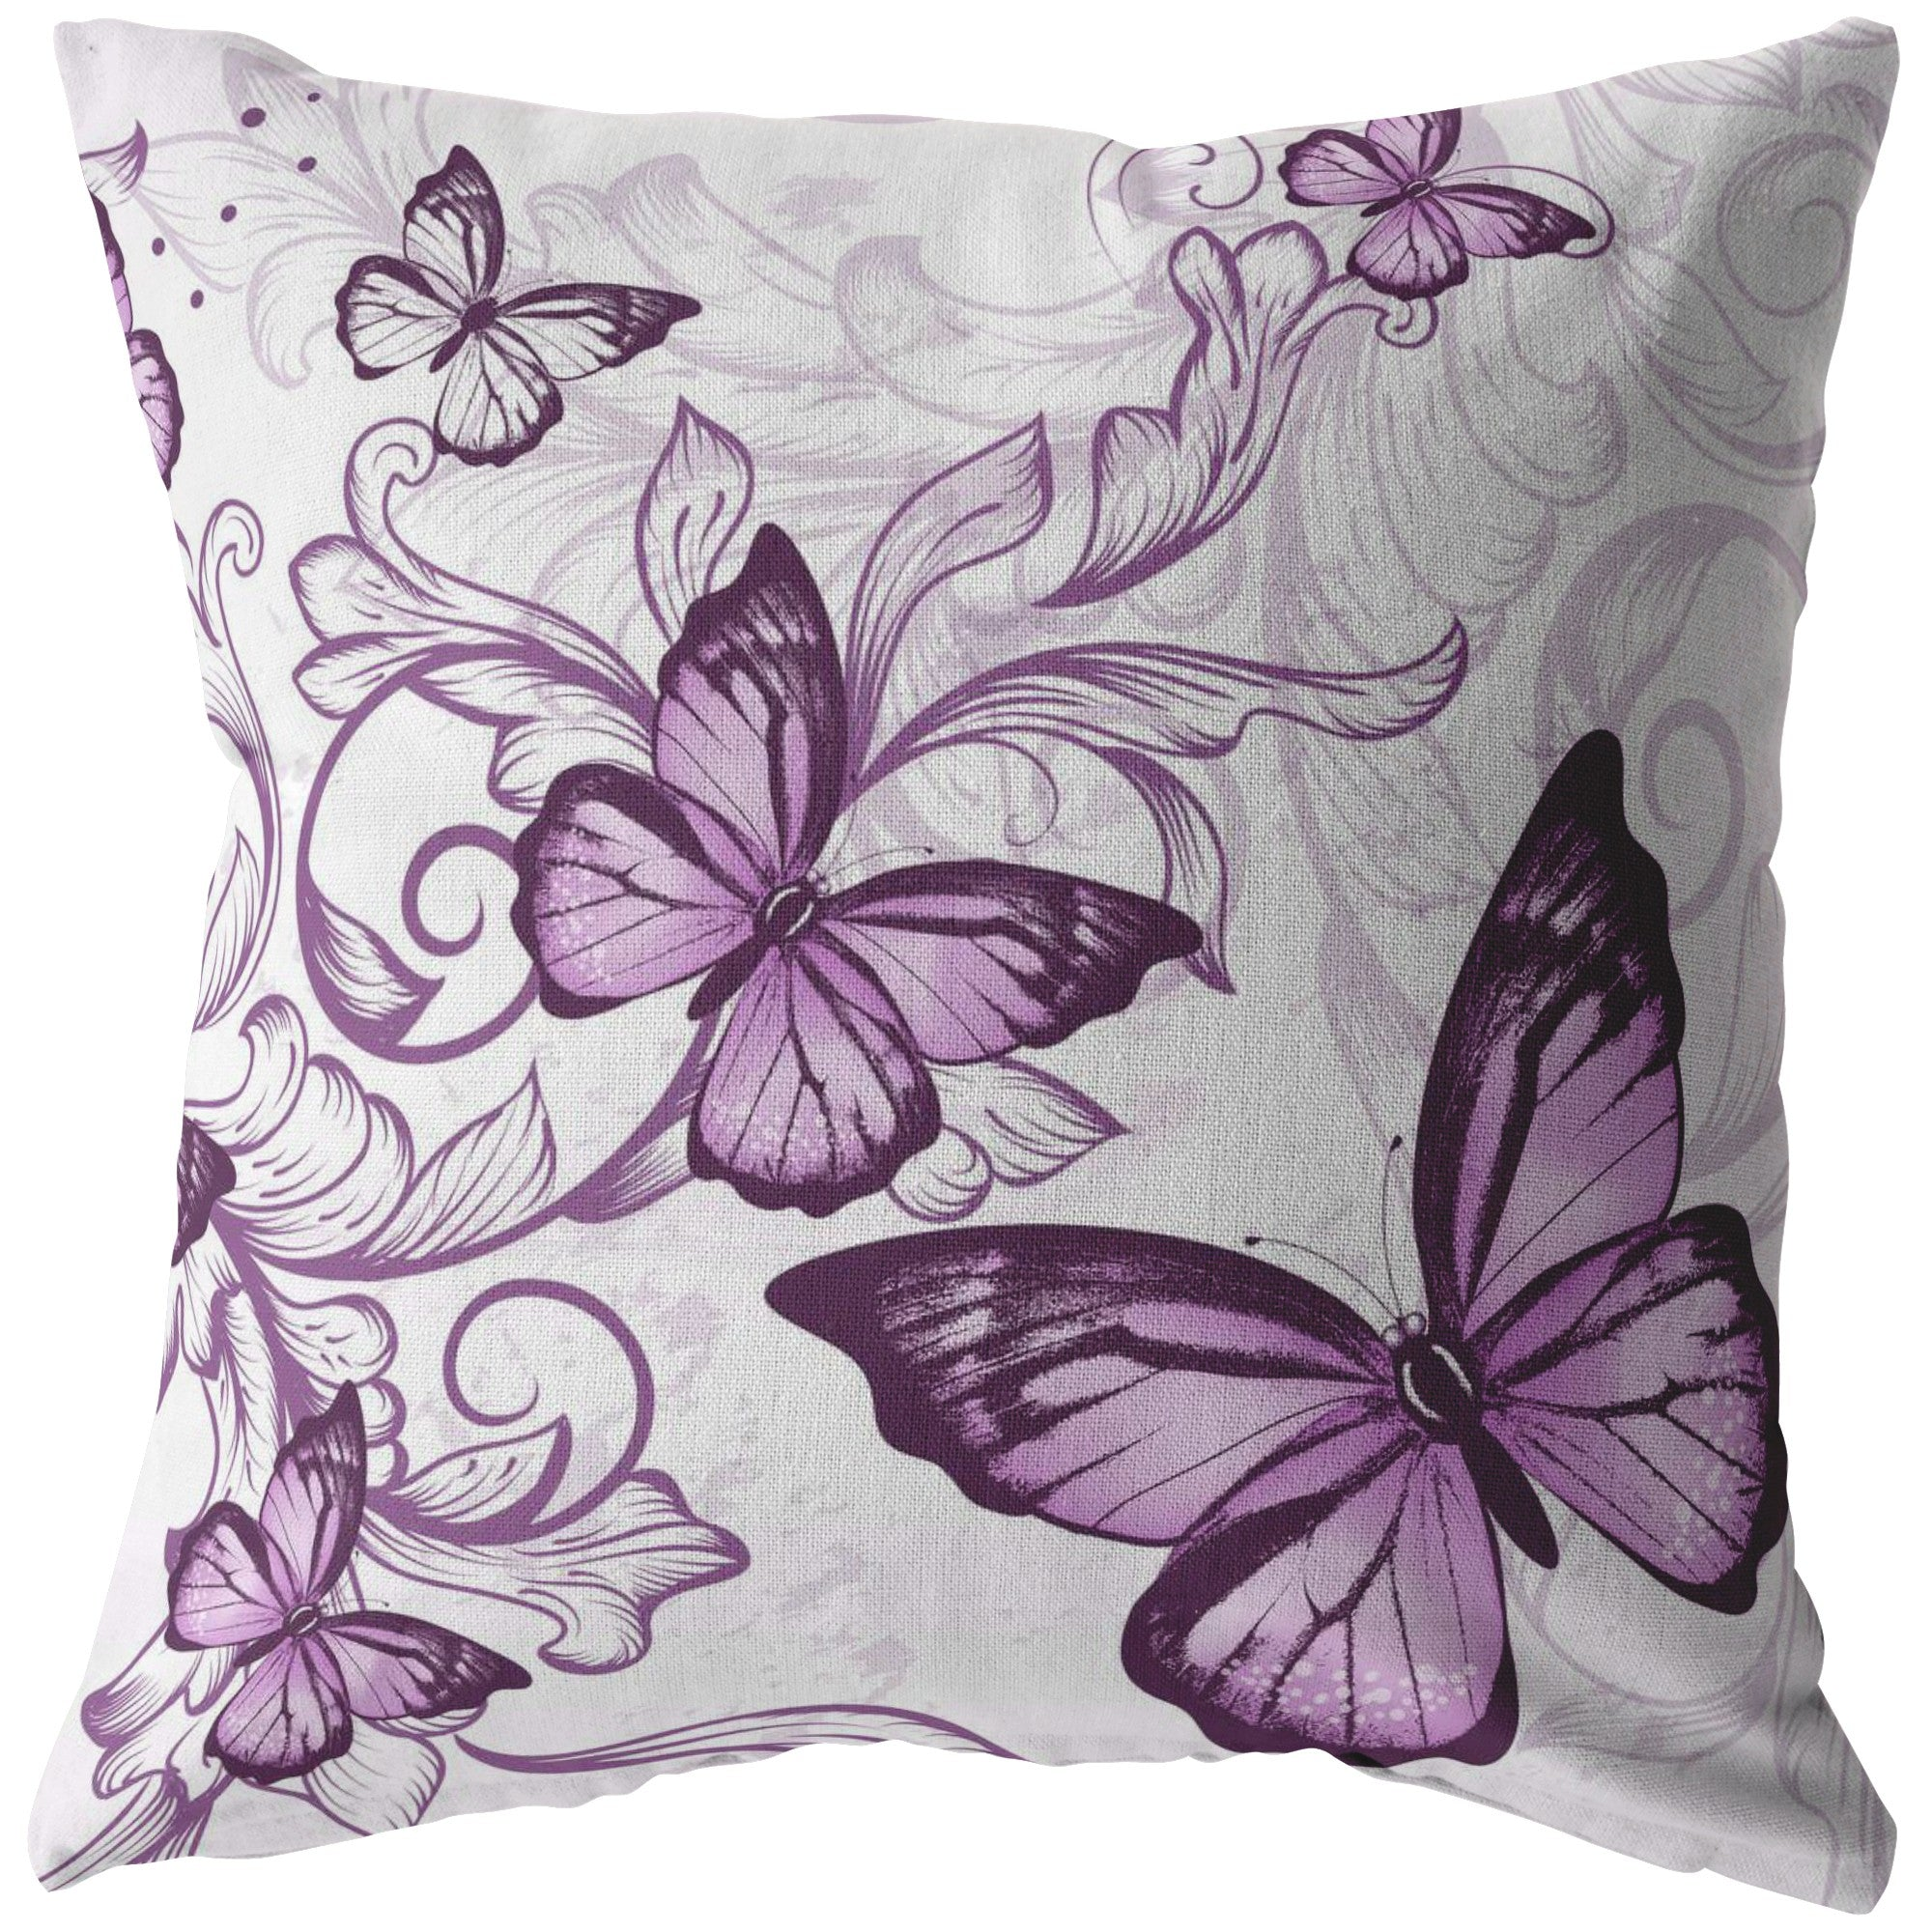 Purple Butterfly Pillow in White